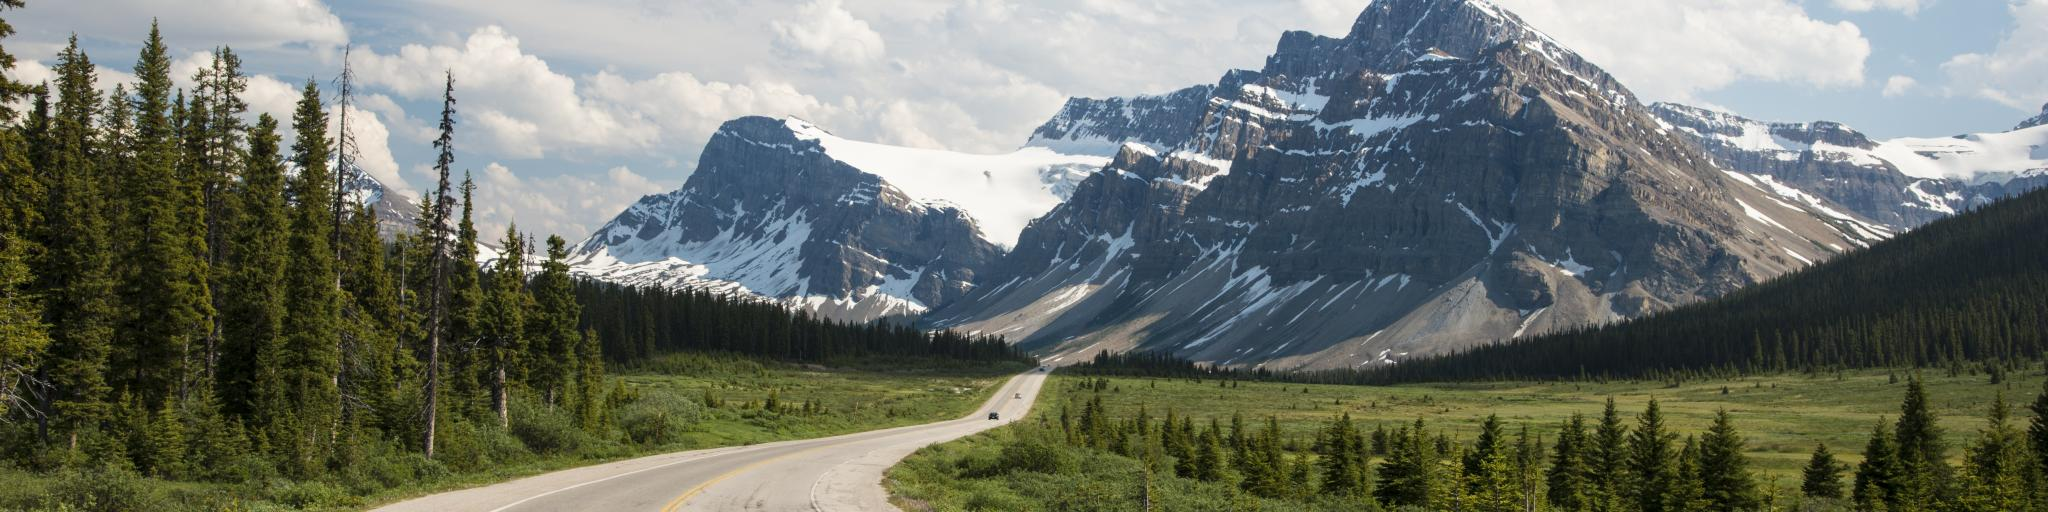 Scenic highway passing through the Banff National Park in Alberta, Canada.